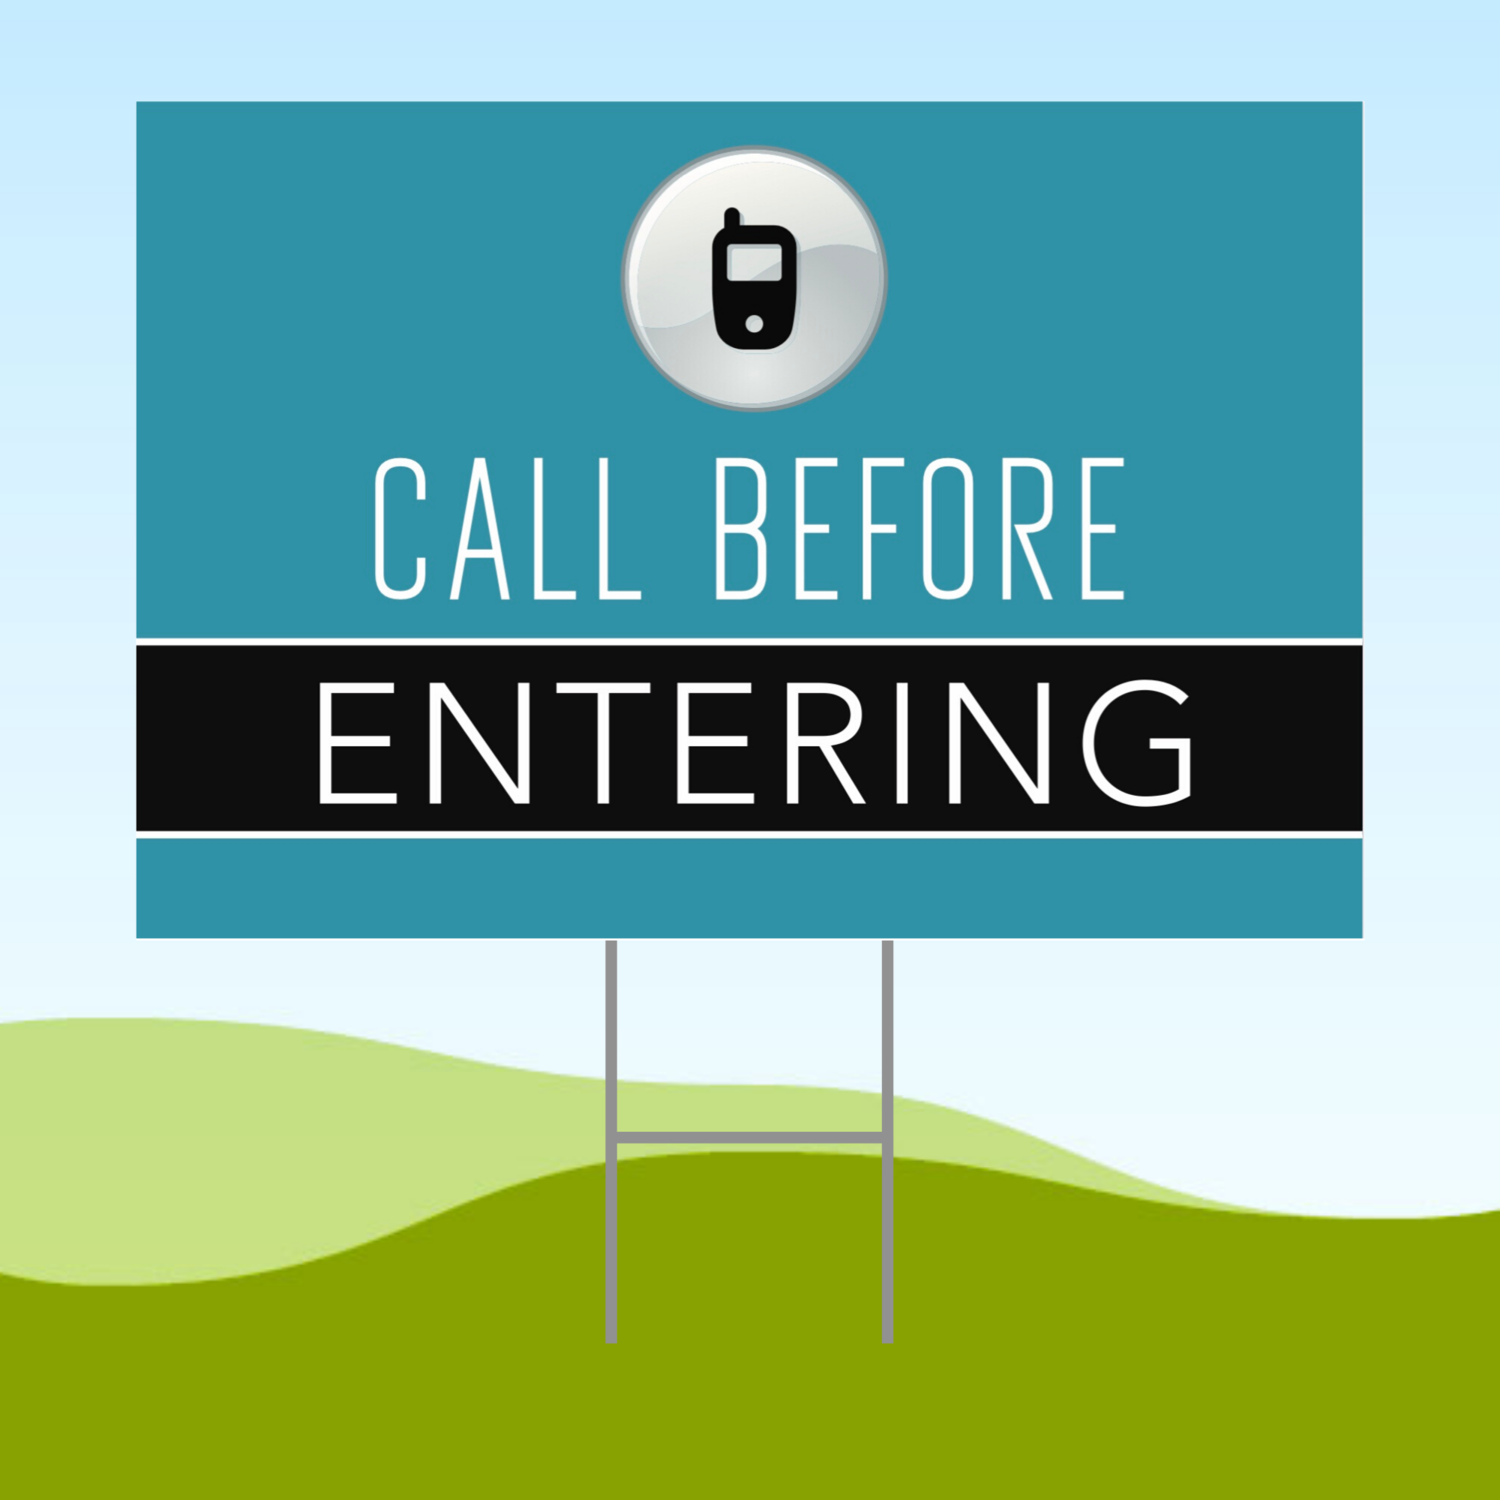 Call Before Entering Blue 18x24 Yard Sign WITH STAKE Corrugated Plastic Bandit